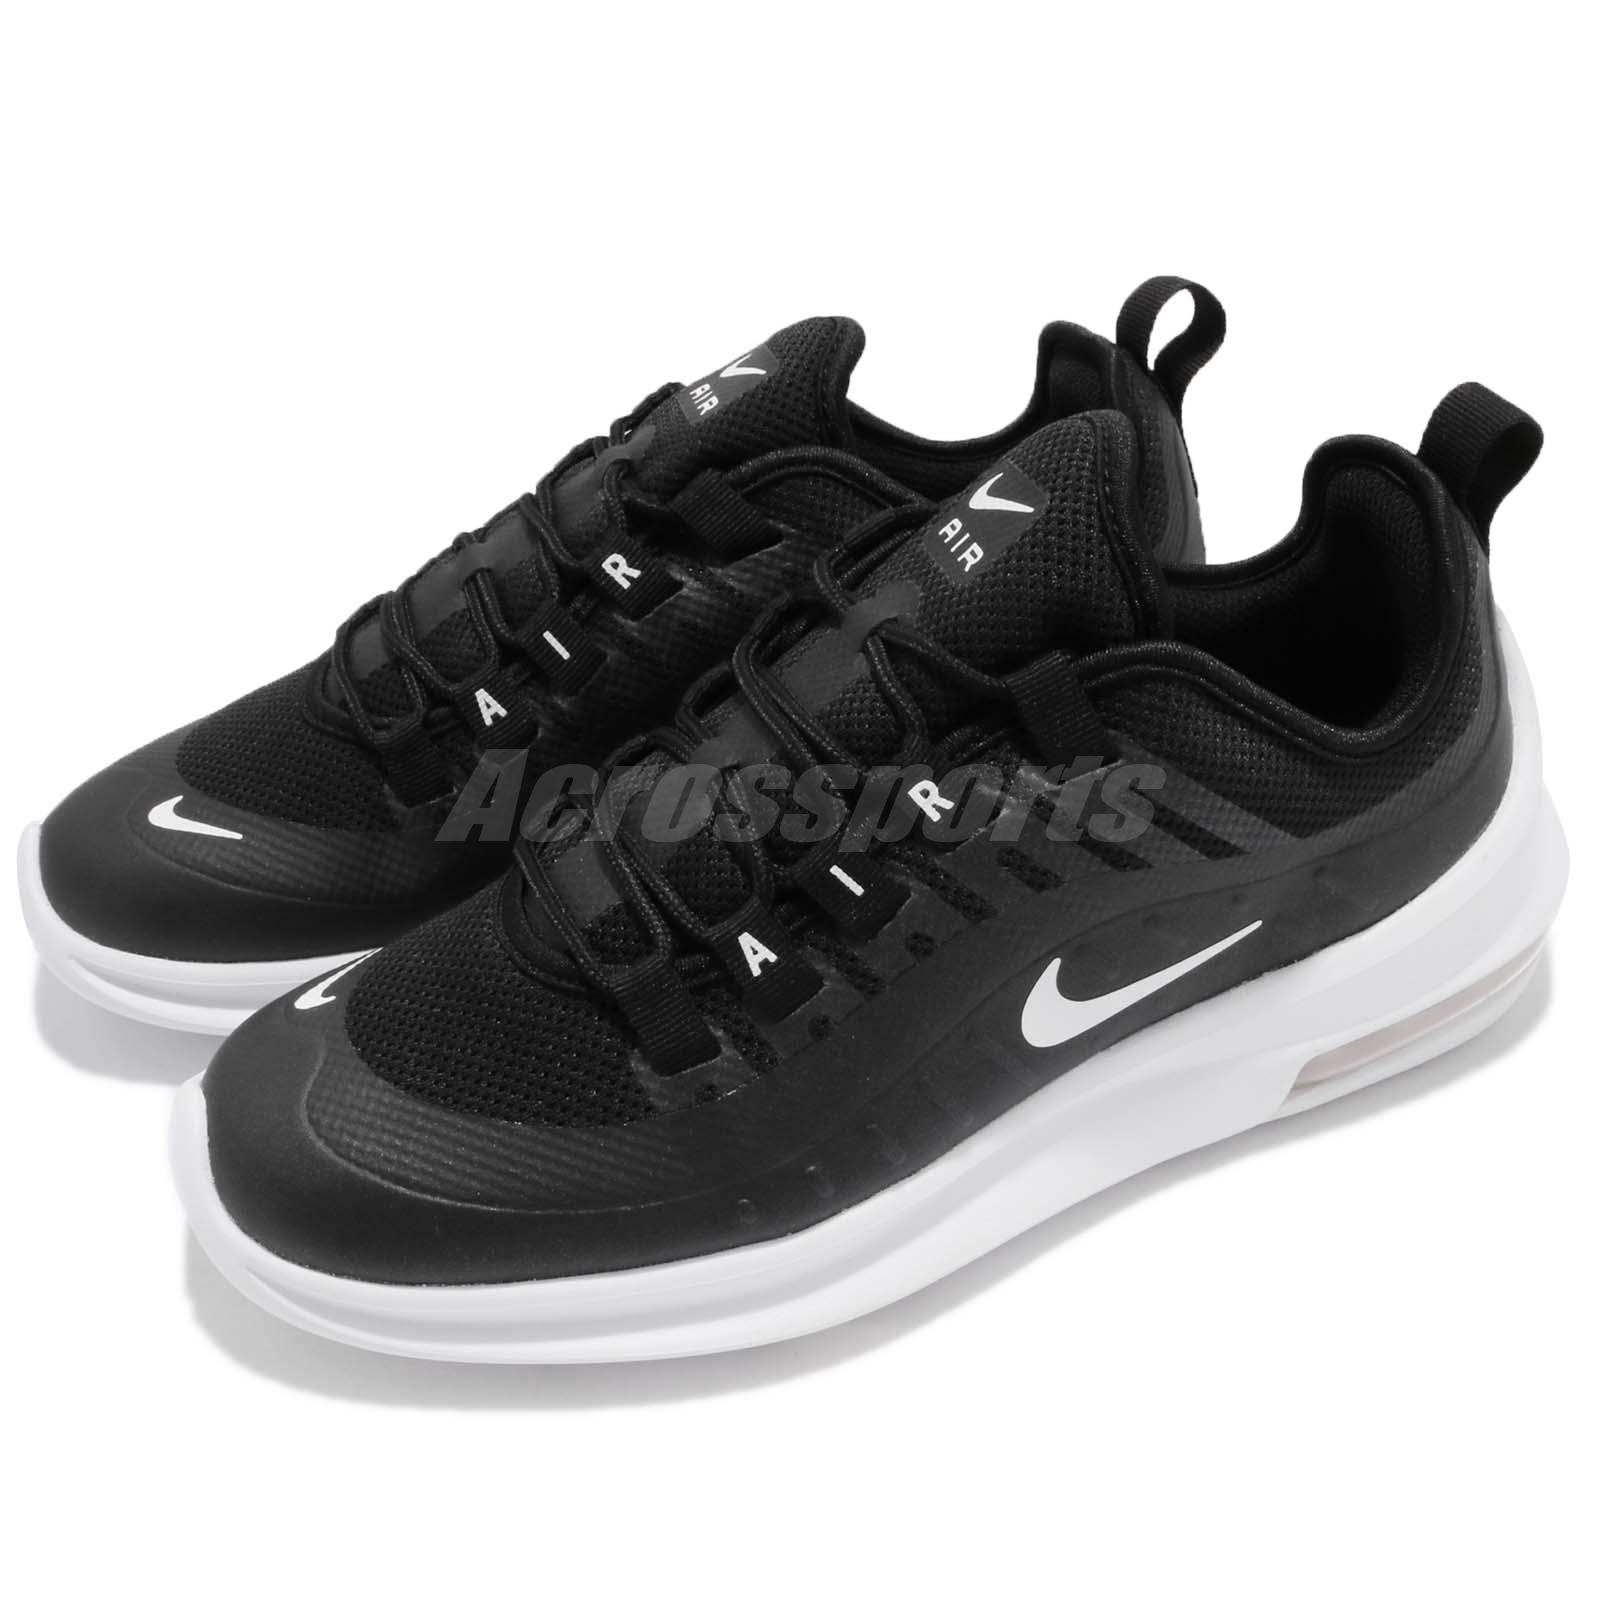 f32fdd42c6ee7 Details about Nike Wmns Air Max Axis Black White Women Running Shoes  Sneakers AA2168-002